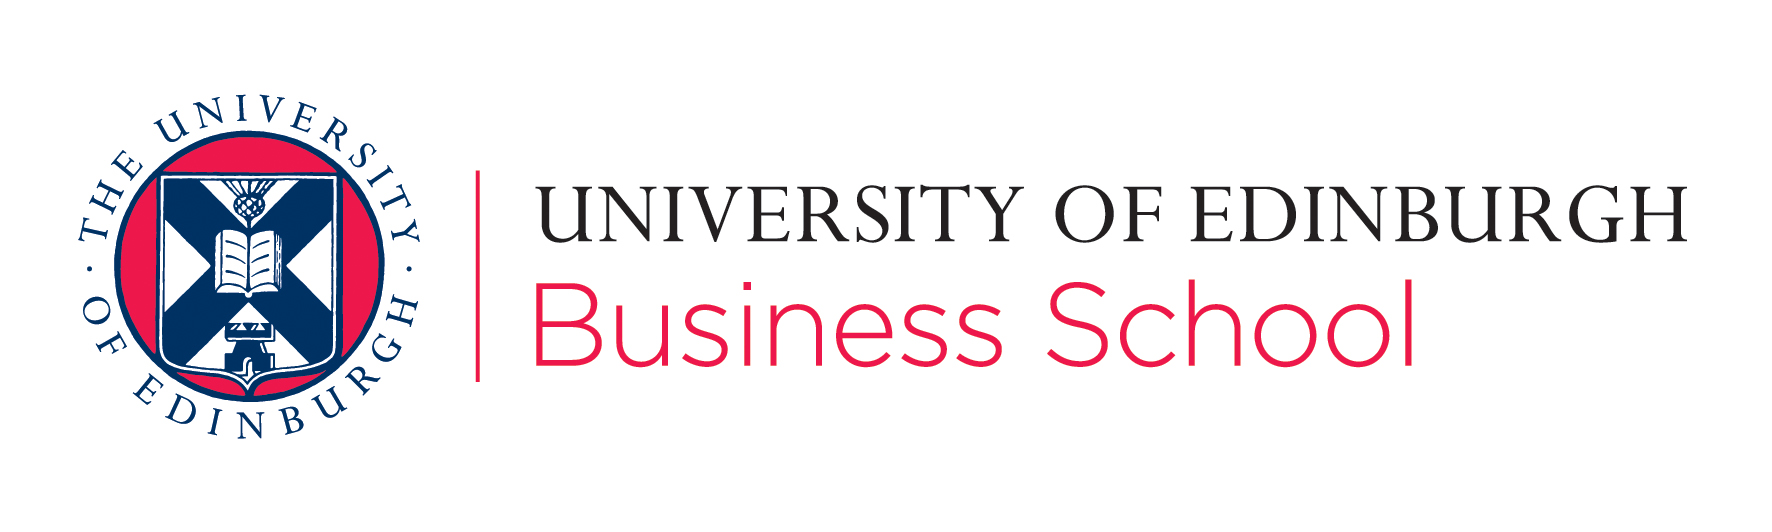 University of Edinburgh Business School Scholarship